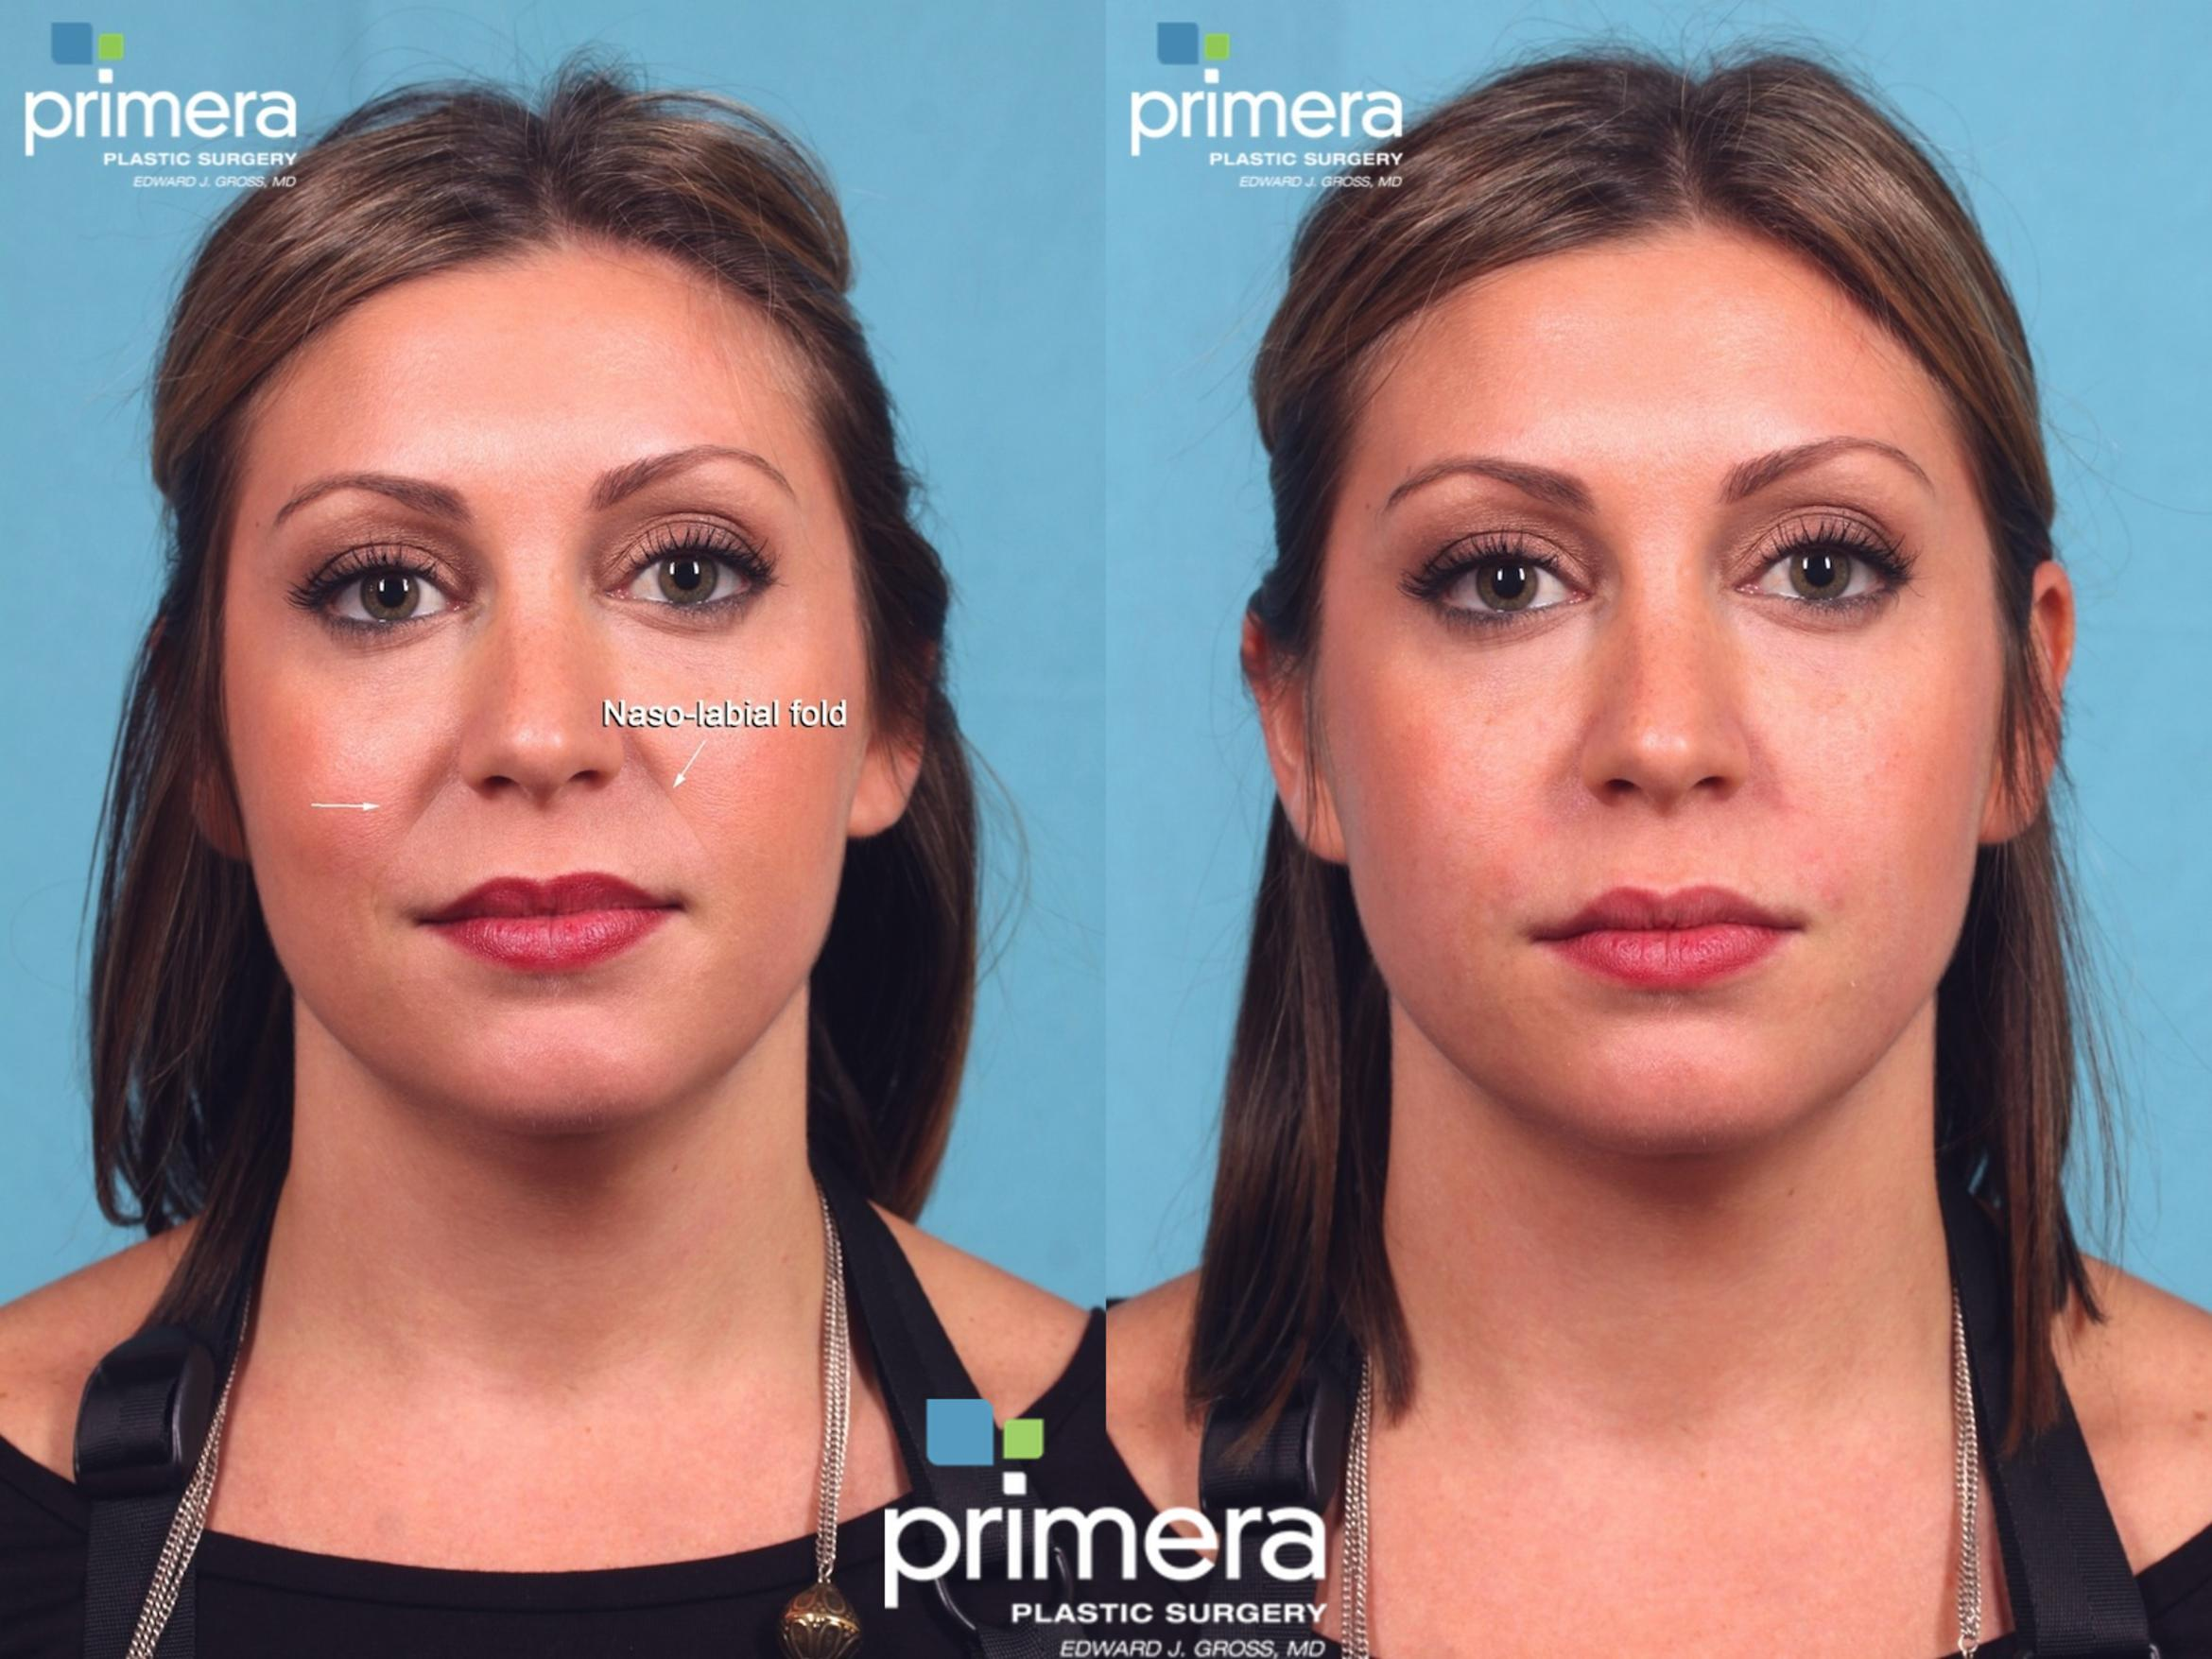 JUVÉDERM® Before & After Photo | Orlando, Florida | Primera Plastic Surgery